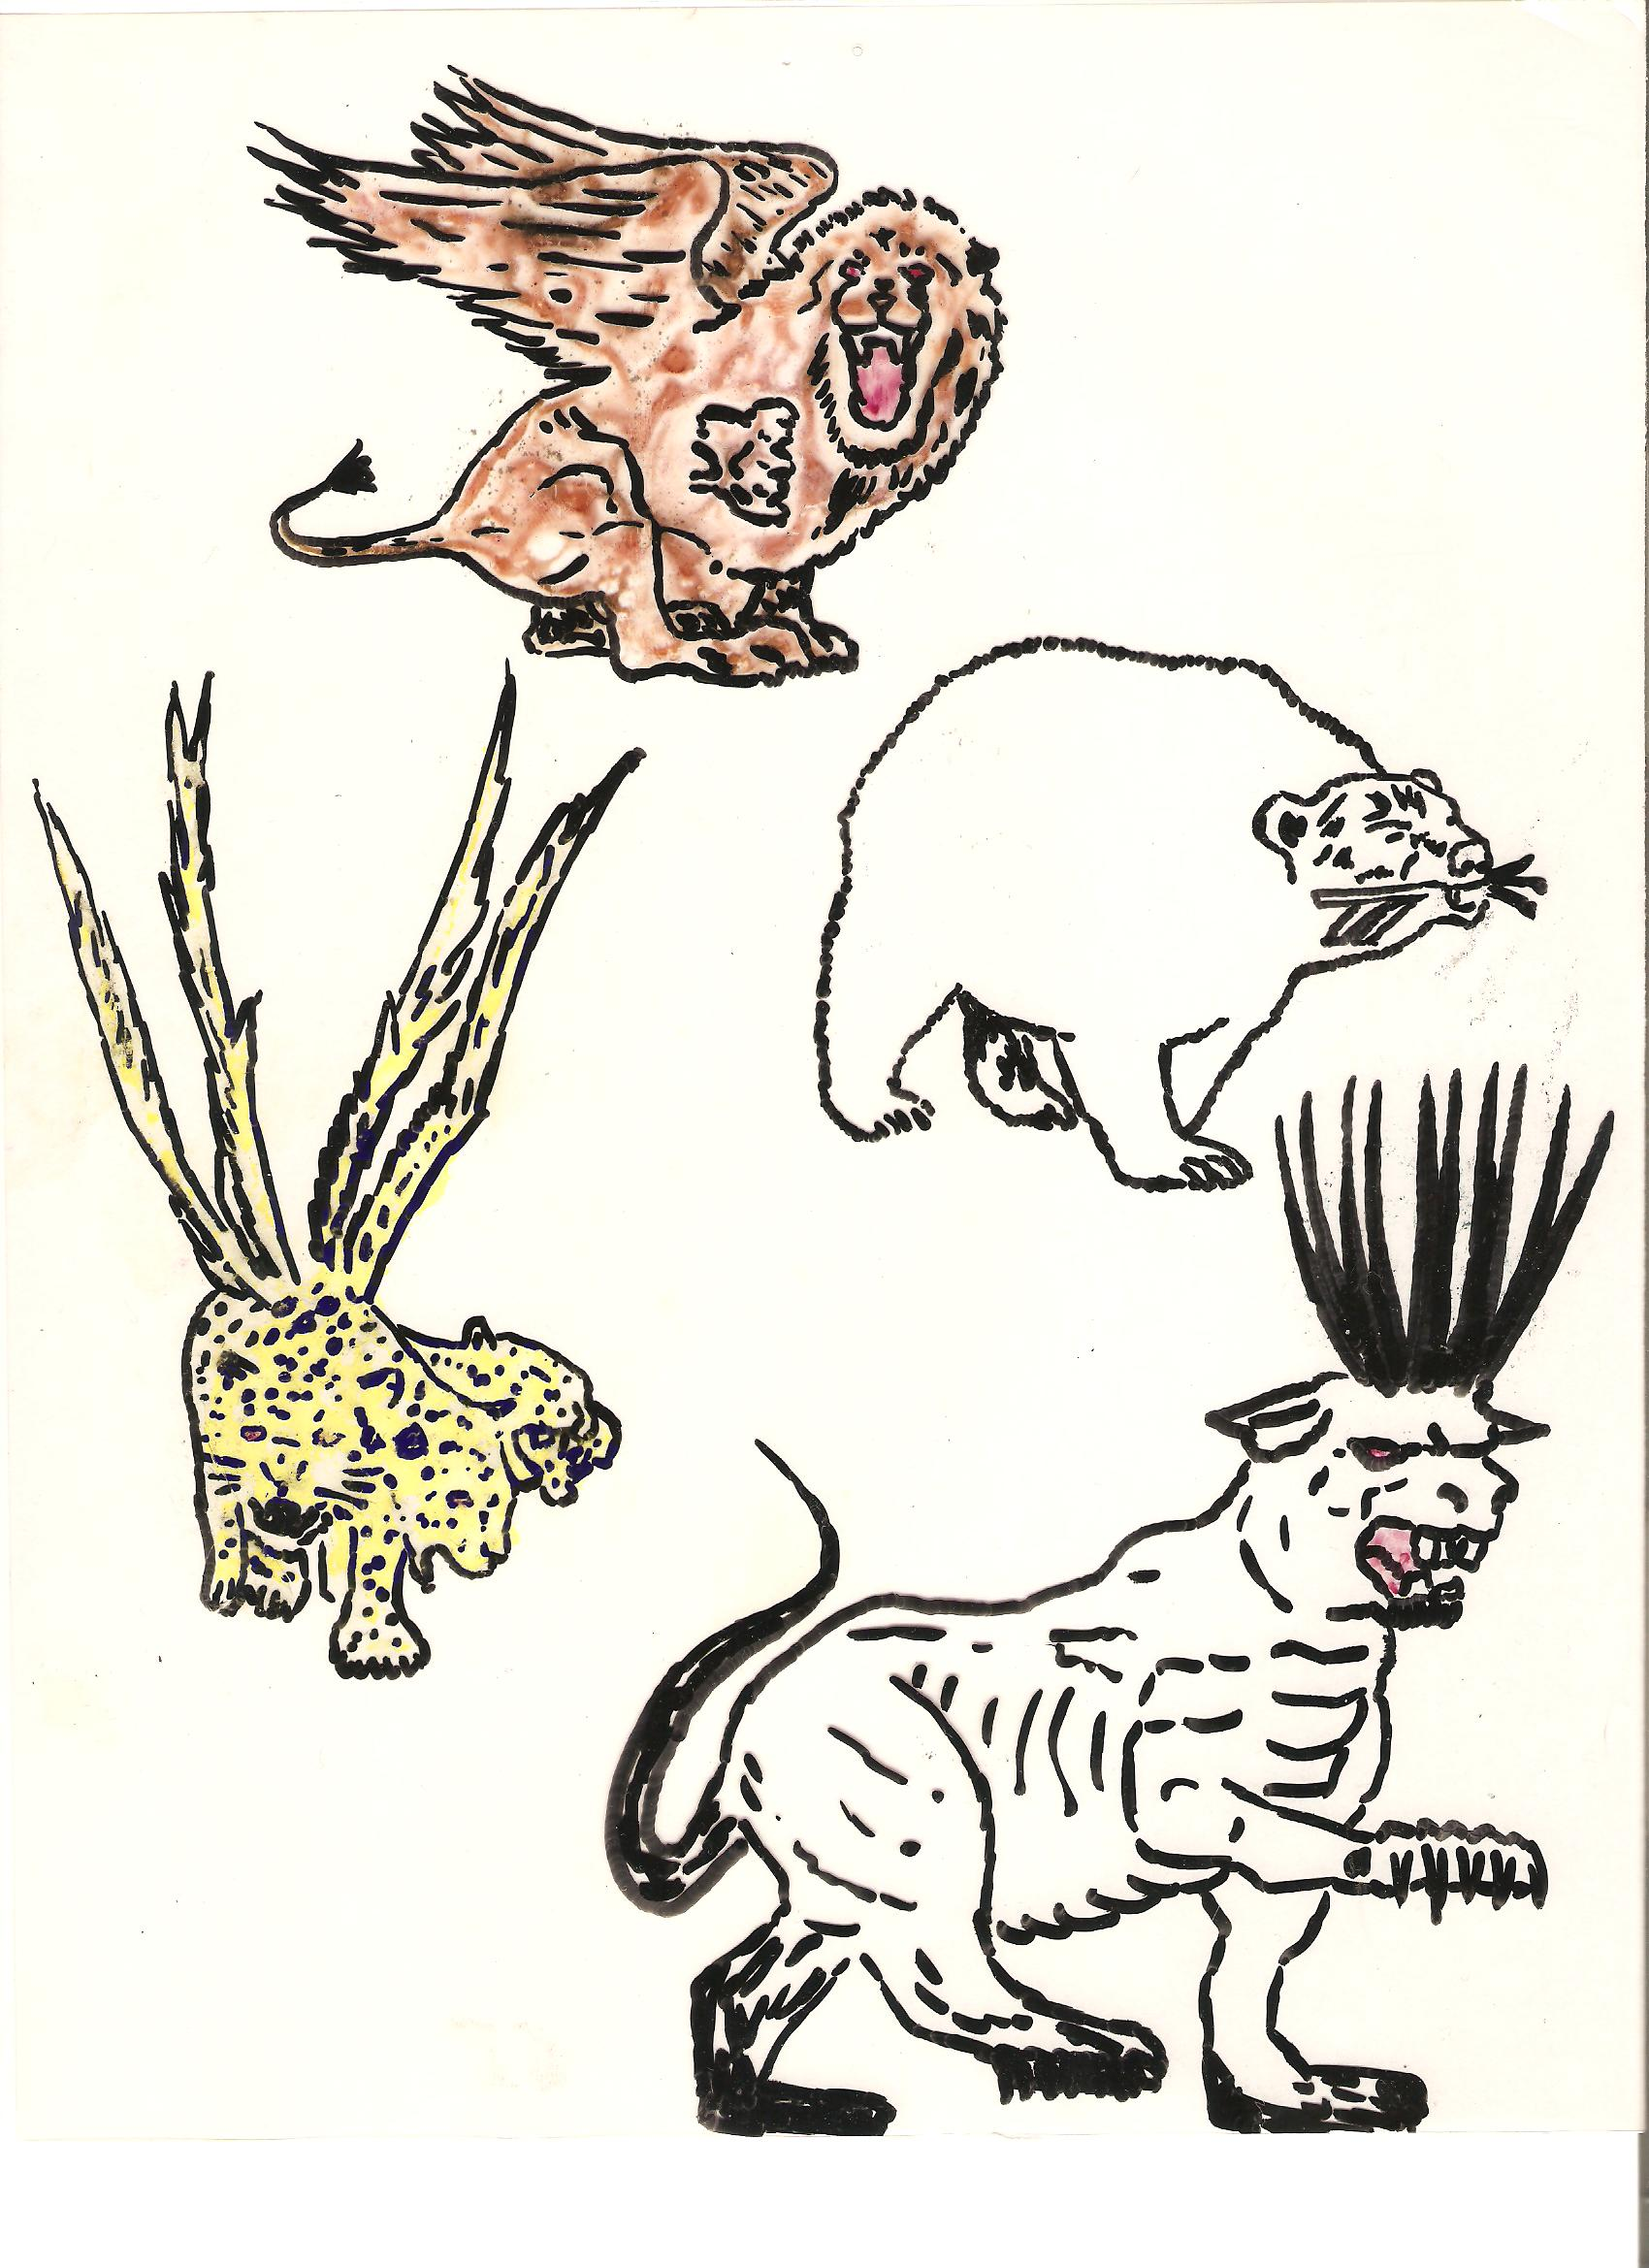 Four drawings of the four beasts that Daniel saw in his dream.